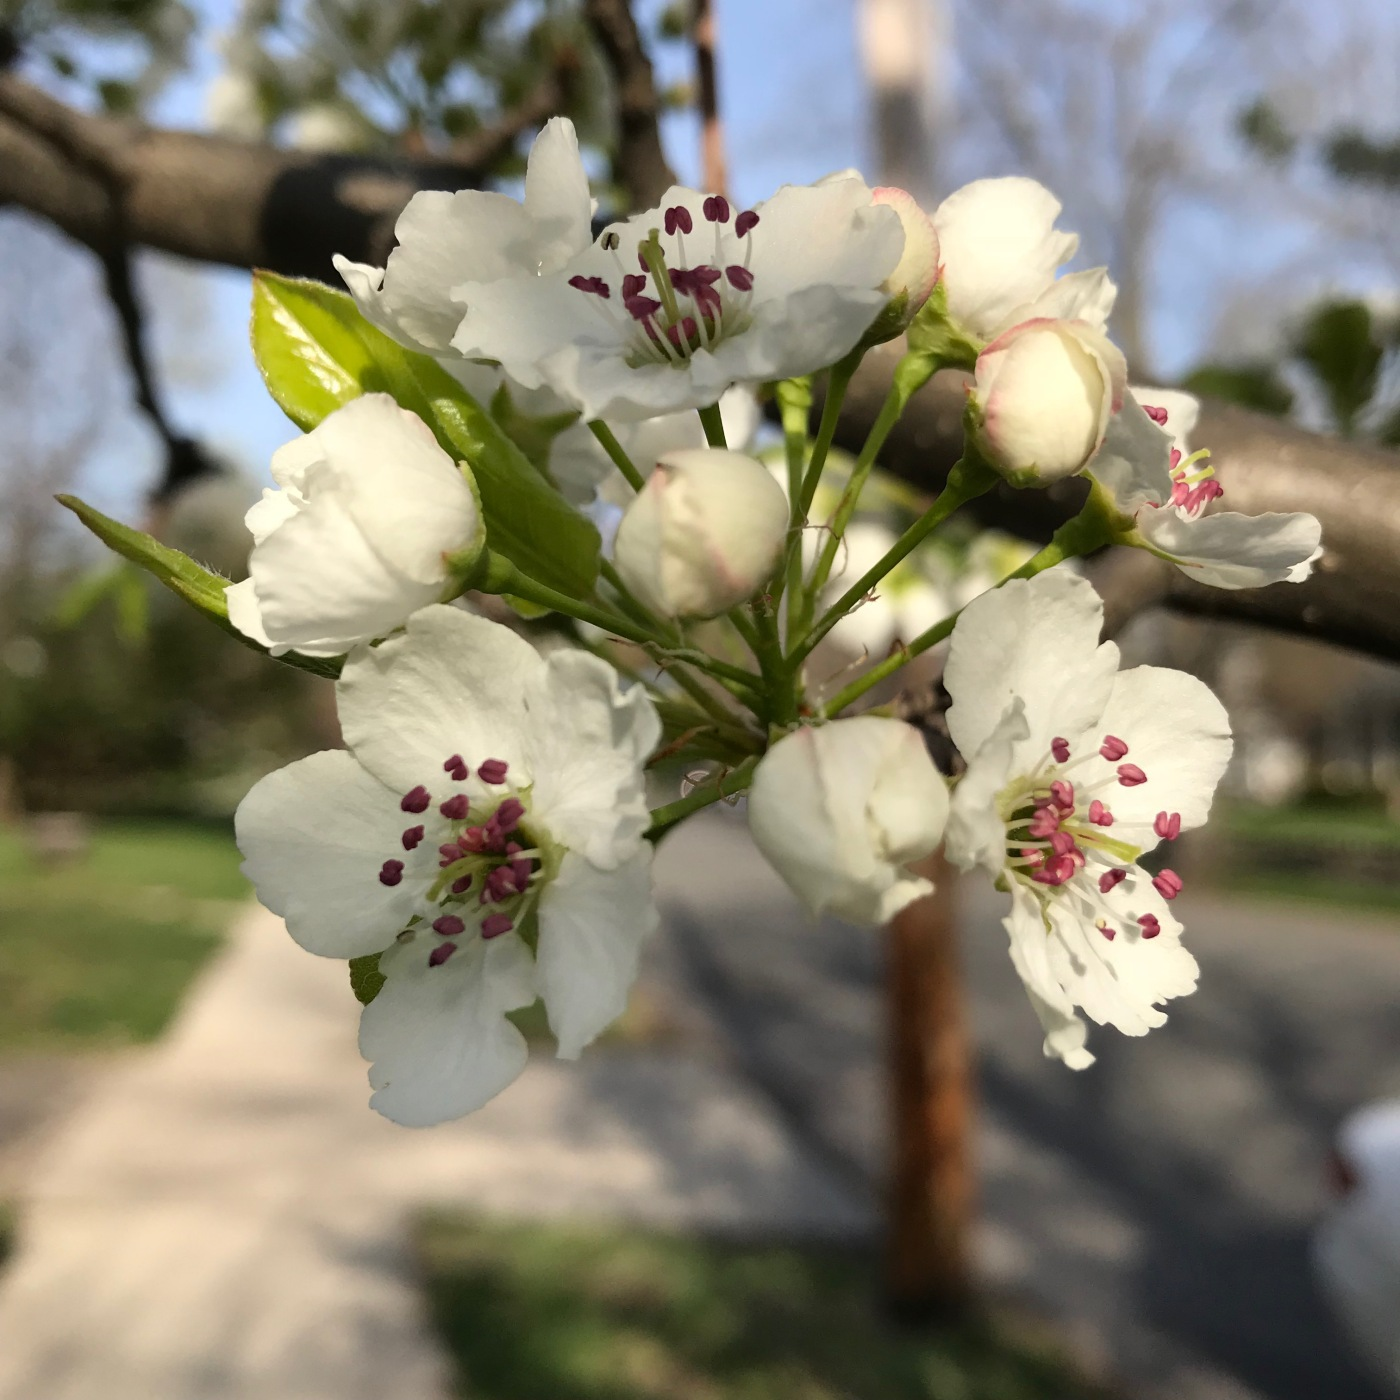 Blooming cluster of white flowers